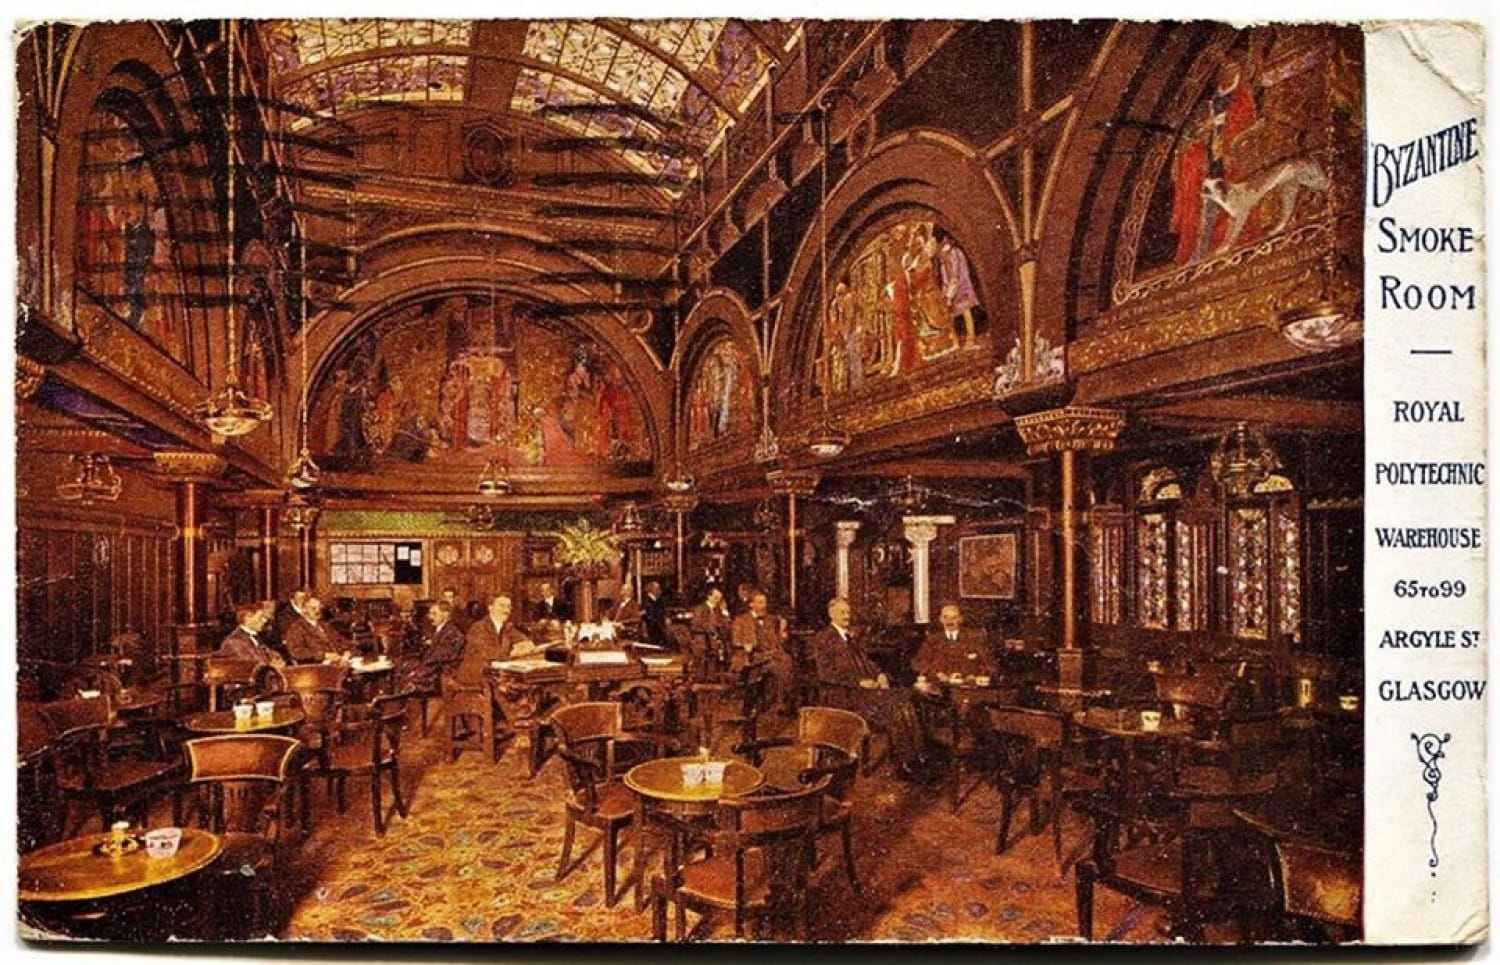 The Byzantine Smoke Room of John Anderson's Royal Polytechnic Warehouse, in Argyle Street, in 1915 (Postcard)